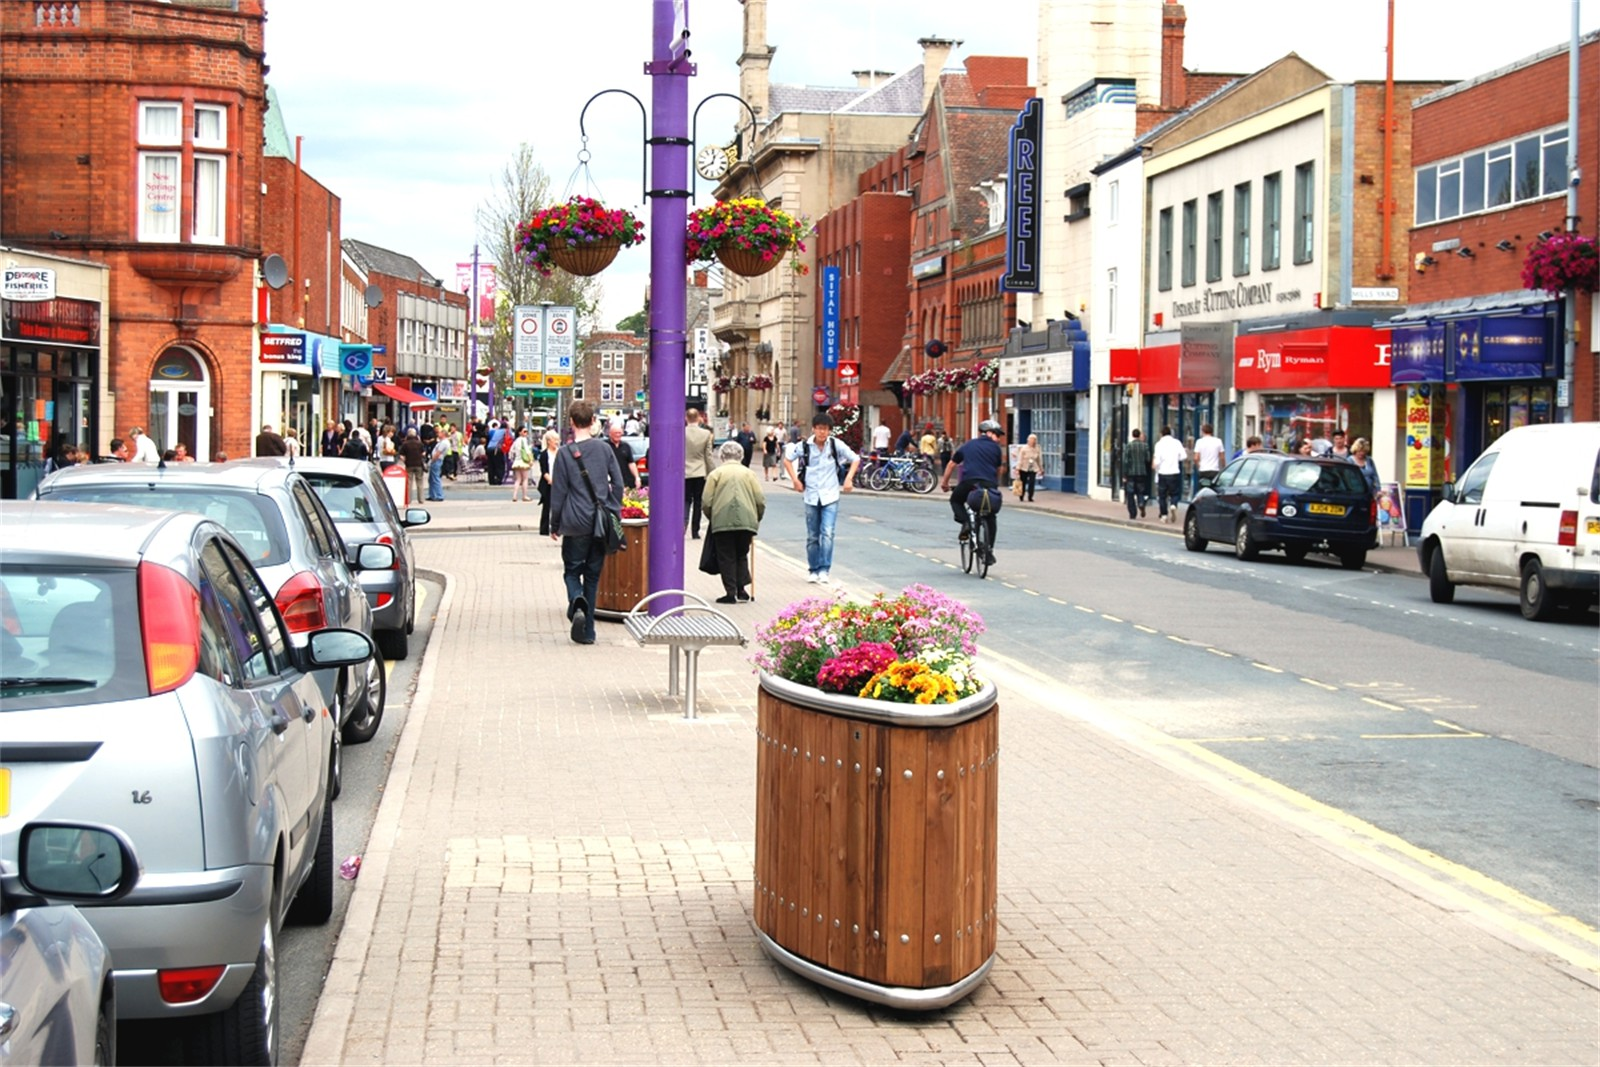 c12813 - street furniture products supplied to Loughborough Town Centre